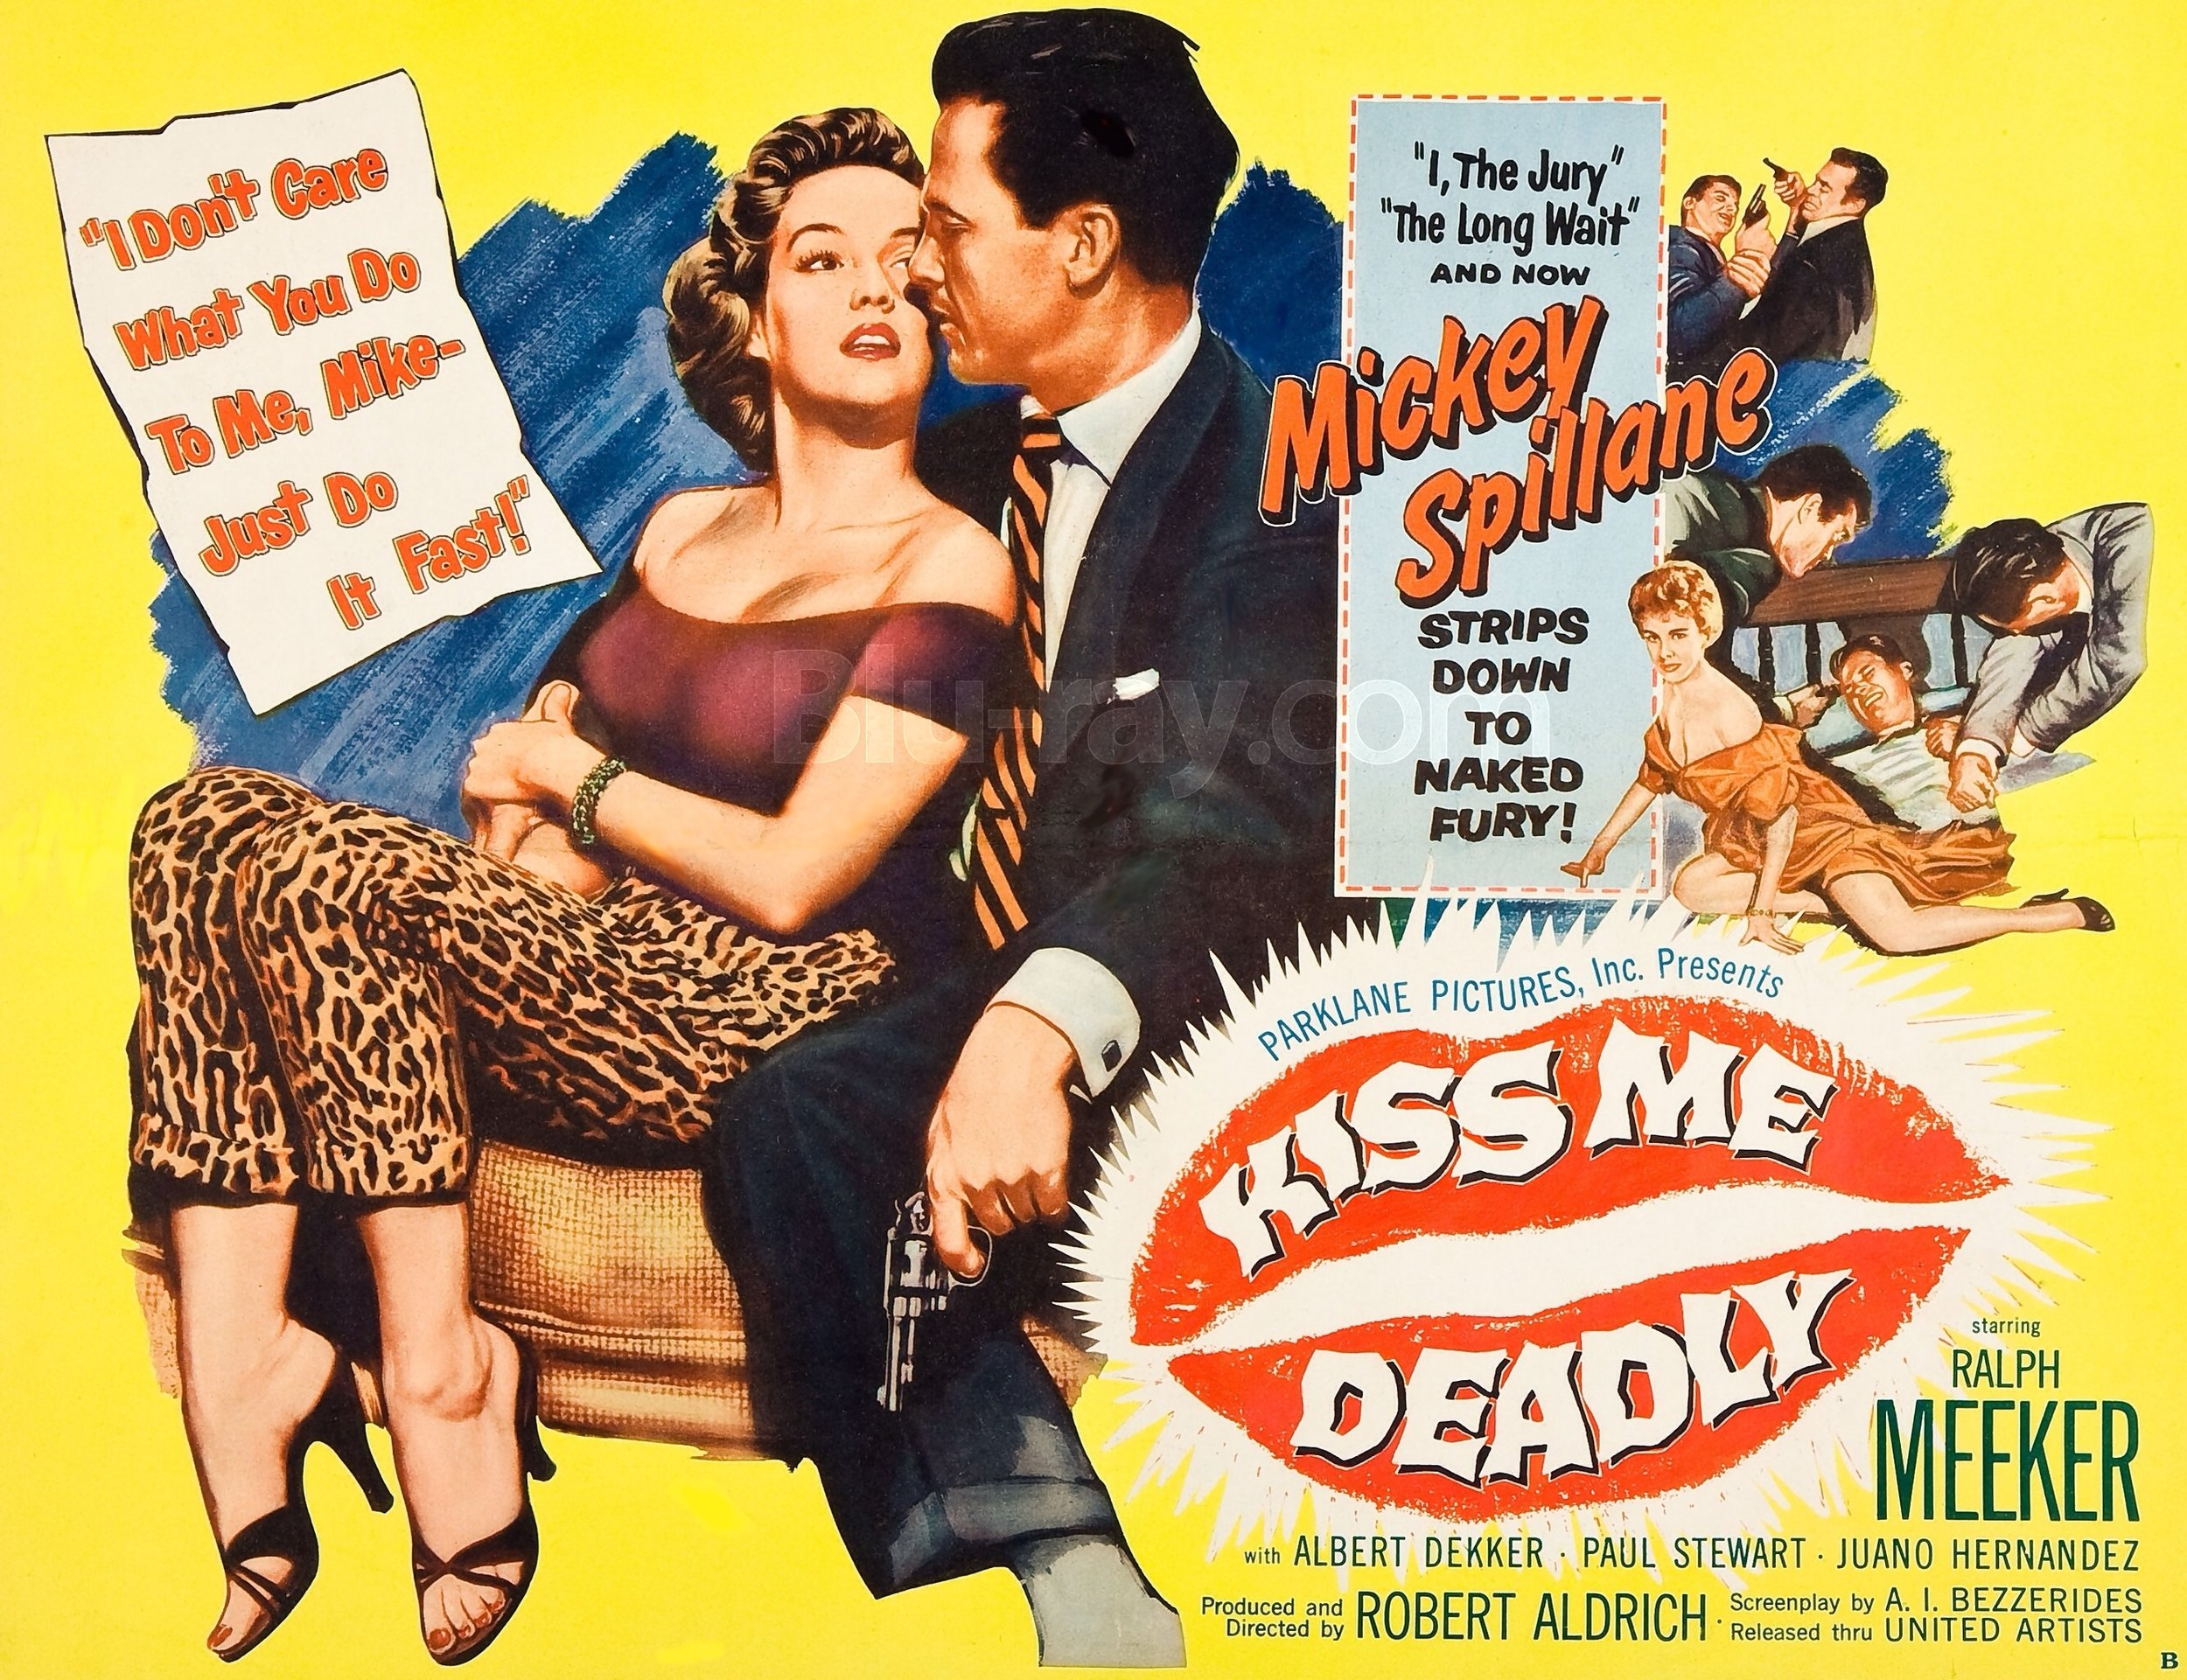 KISS ME DEADLY is regarded as one of the greatest Film Noir titles.